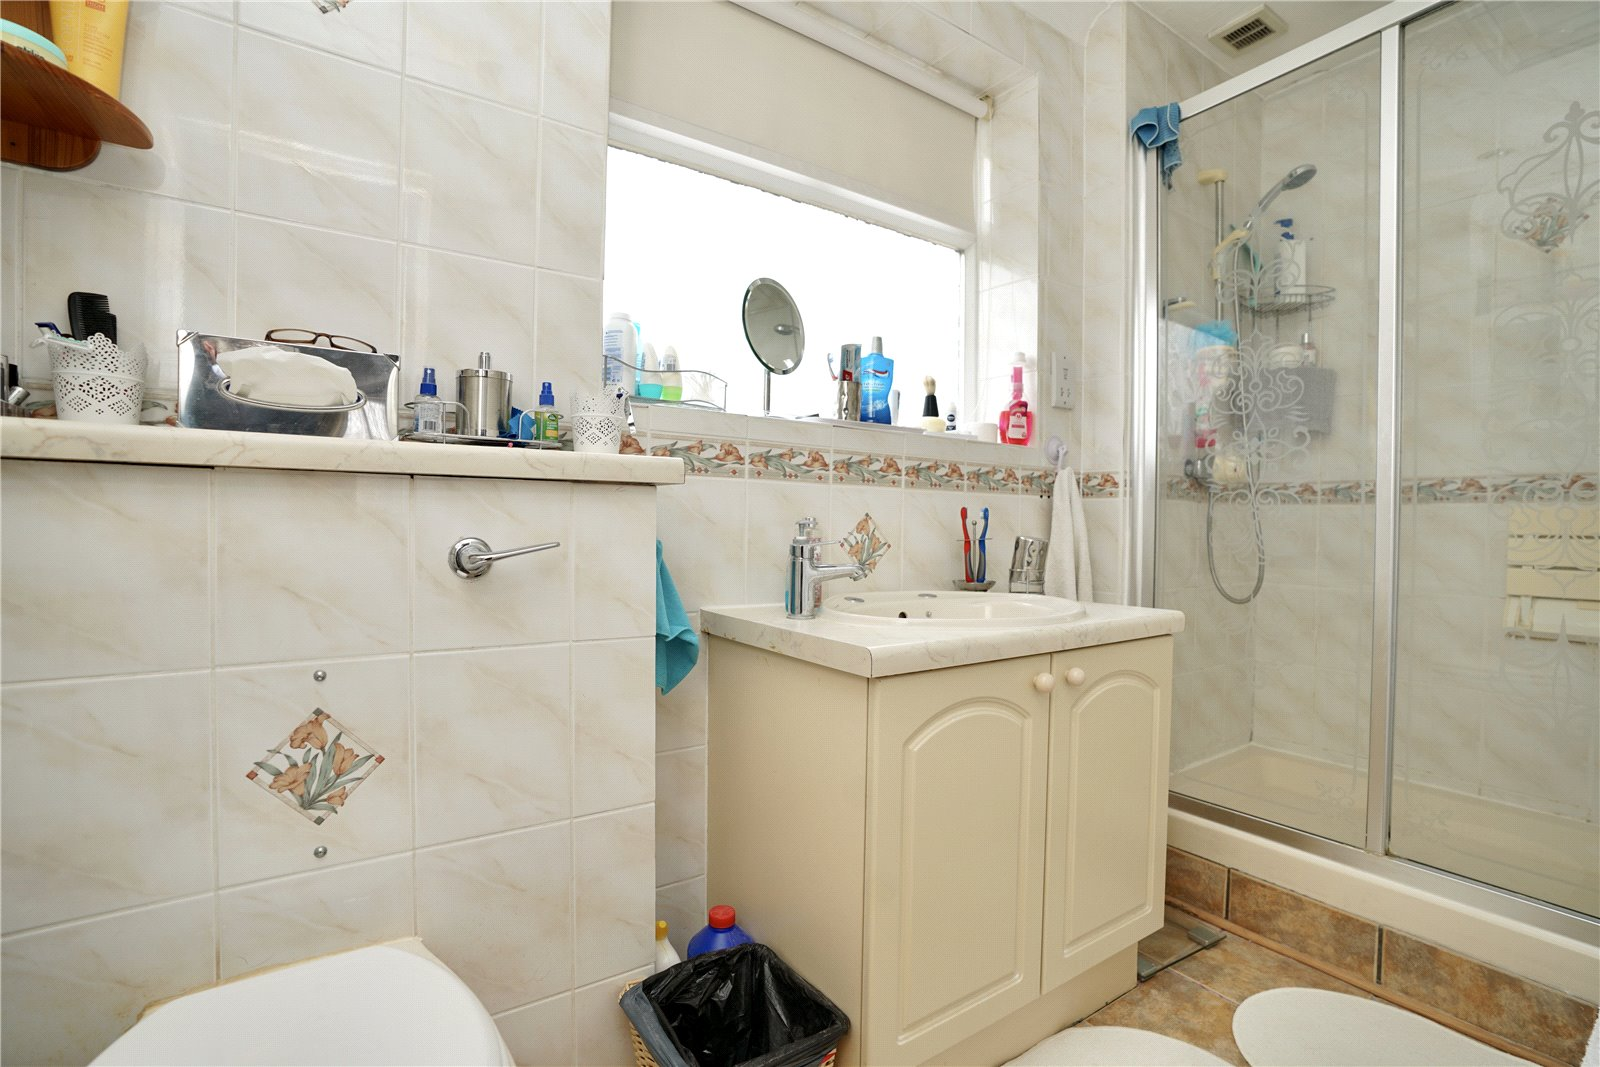 3 bed house for sale in Cunningham Way, Eaton Socon  - Property Image 6